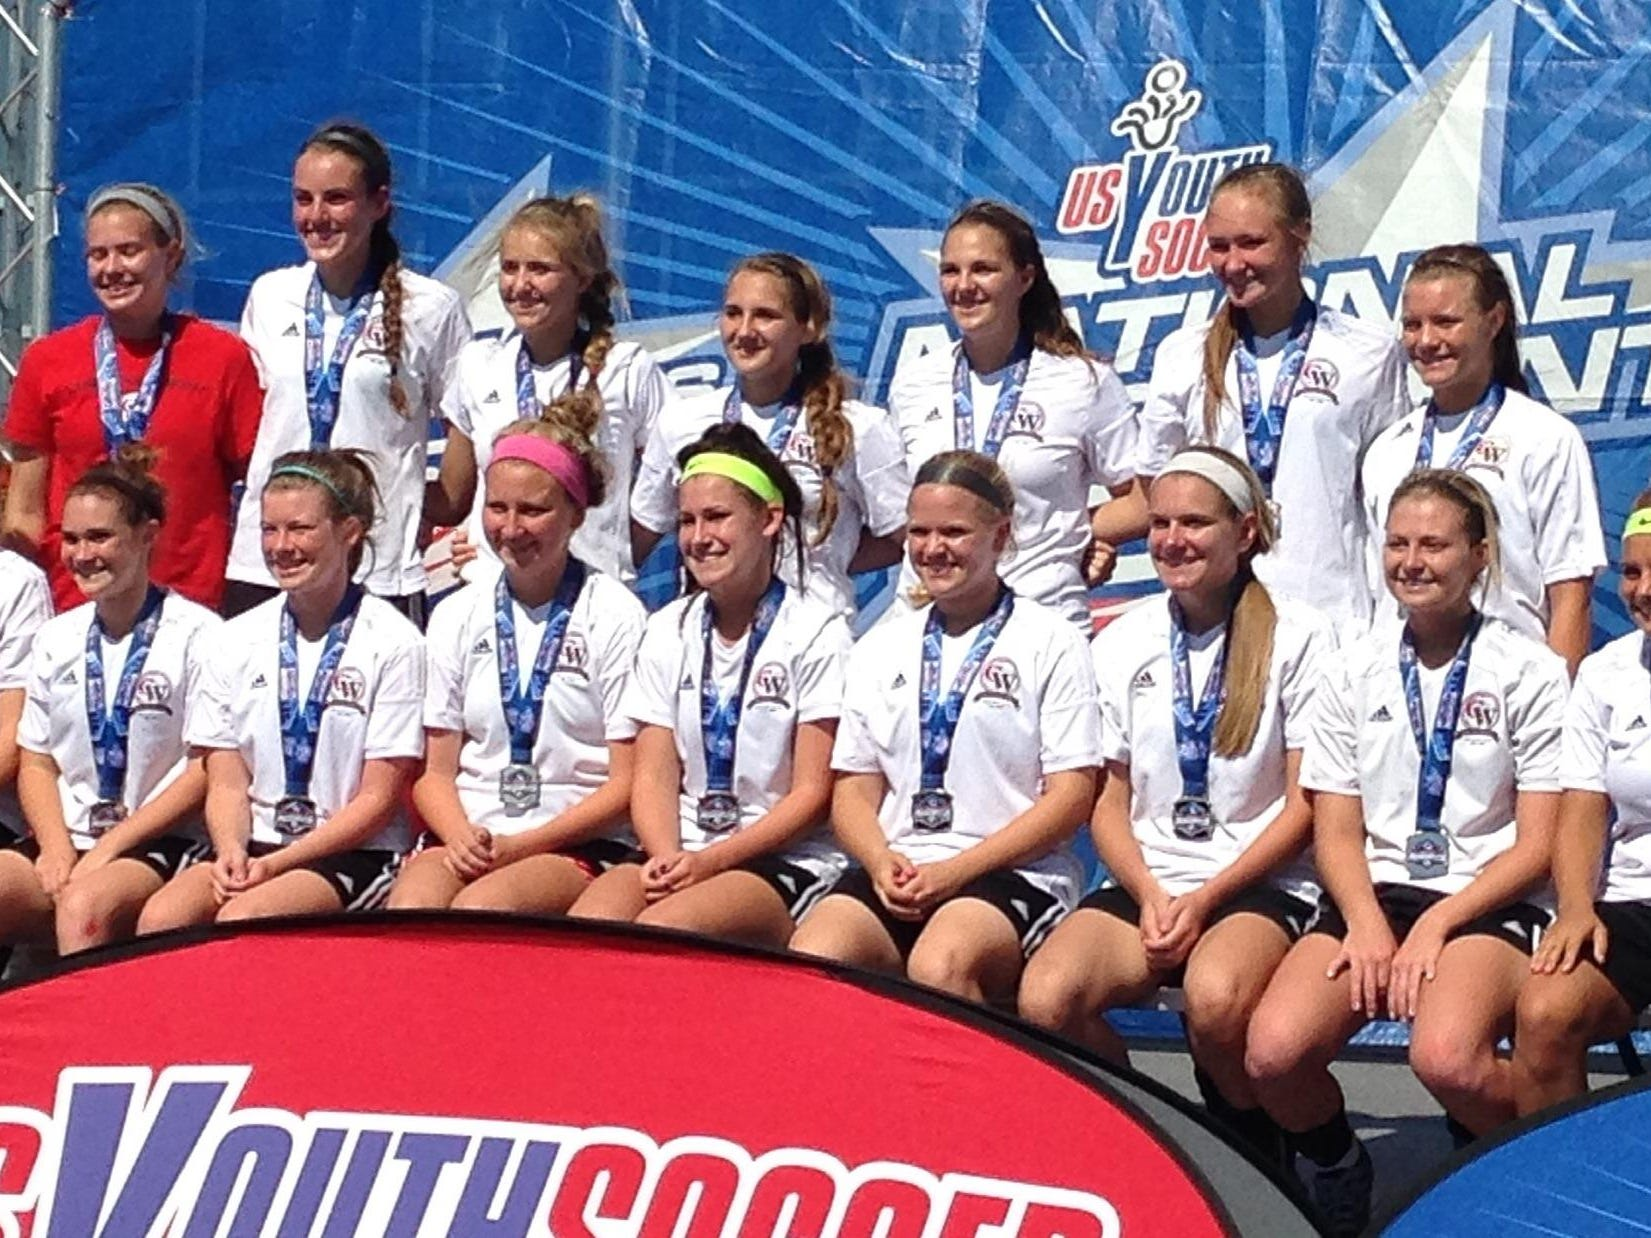 Cincinnati West Soccer Club's U17 girls advanced to the championship match of the President's Cup National Championship.